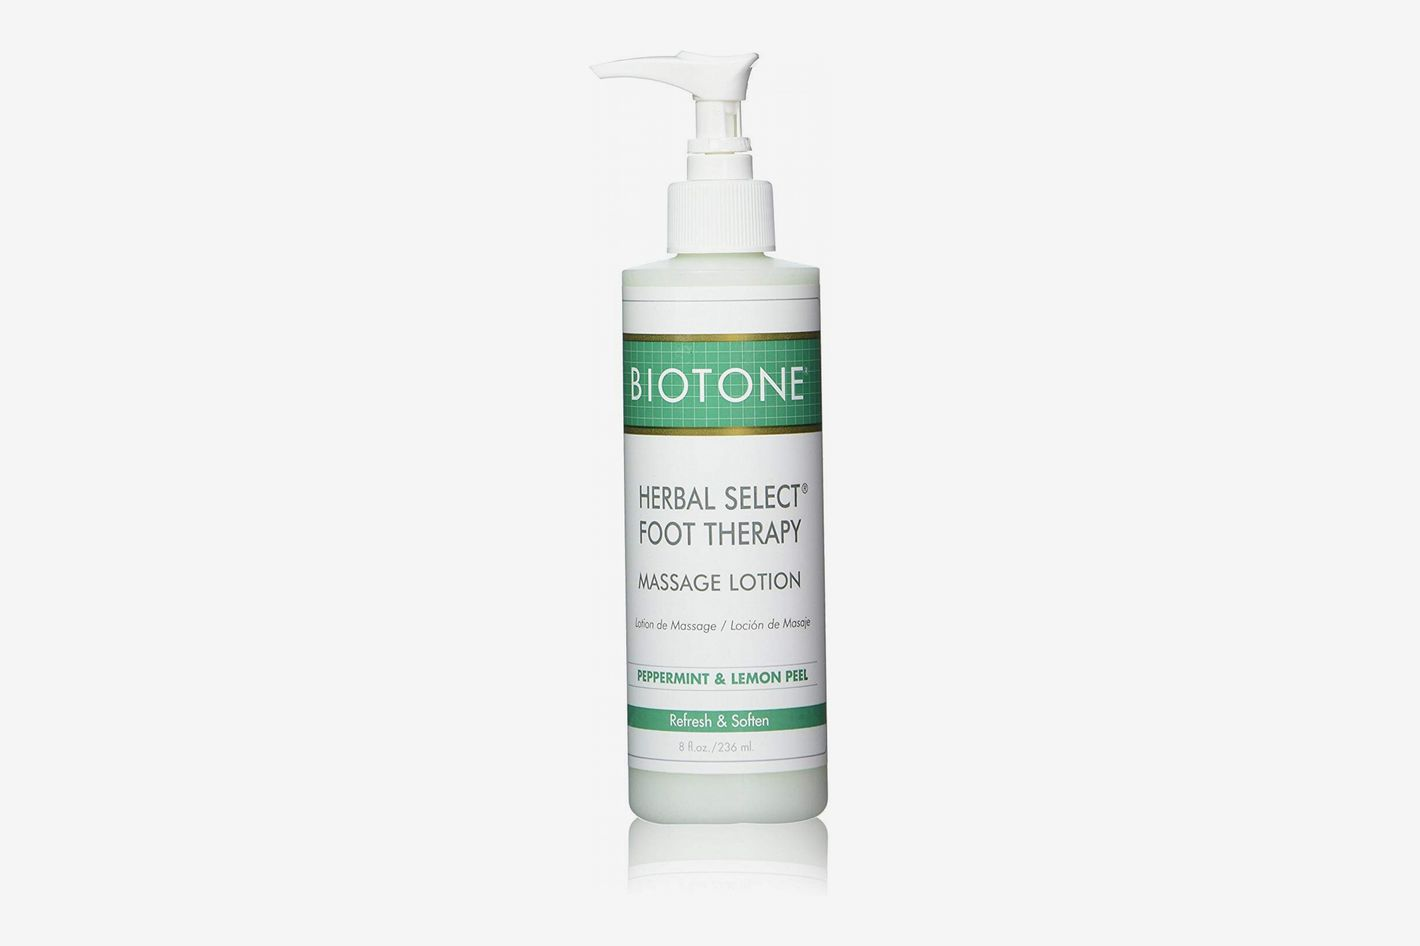 Biotone Herbal Select Foot Therapy Lotion